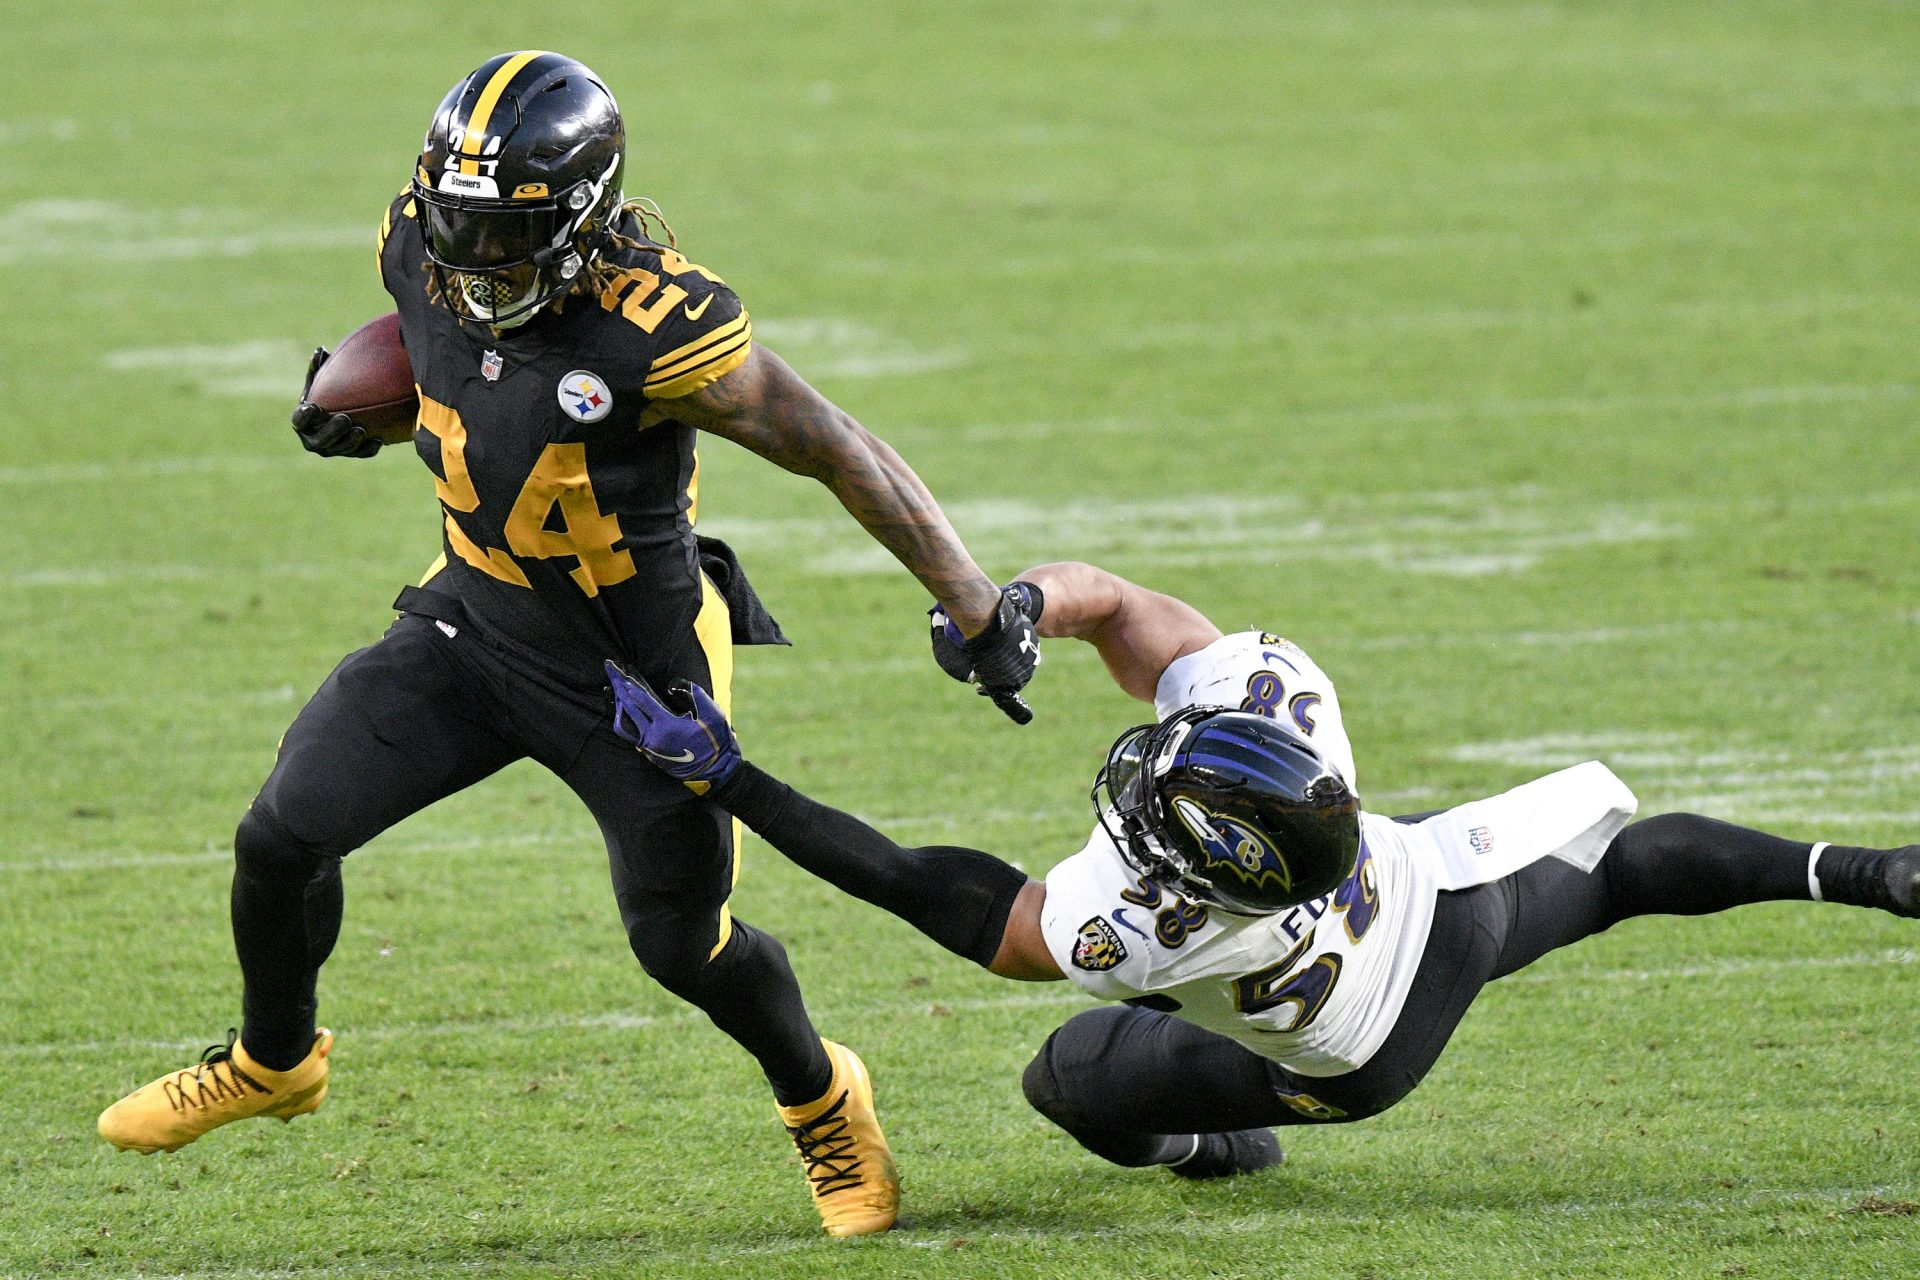 Pittsburgh Steelers running back Benny Snell (24) runs away from Baltimore Ravens outside linebacker L.J. Fort (58) during the first half of an NFL football game, Wednesday, Dec. 2, 2020, in Pittsburgh.